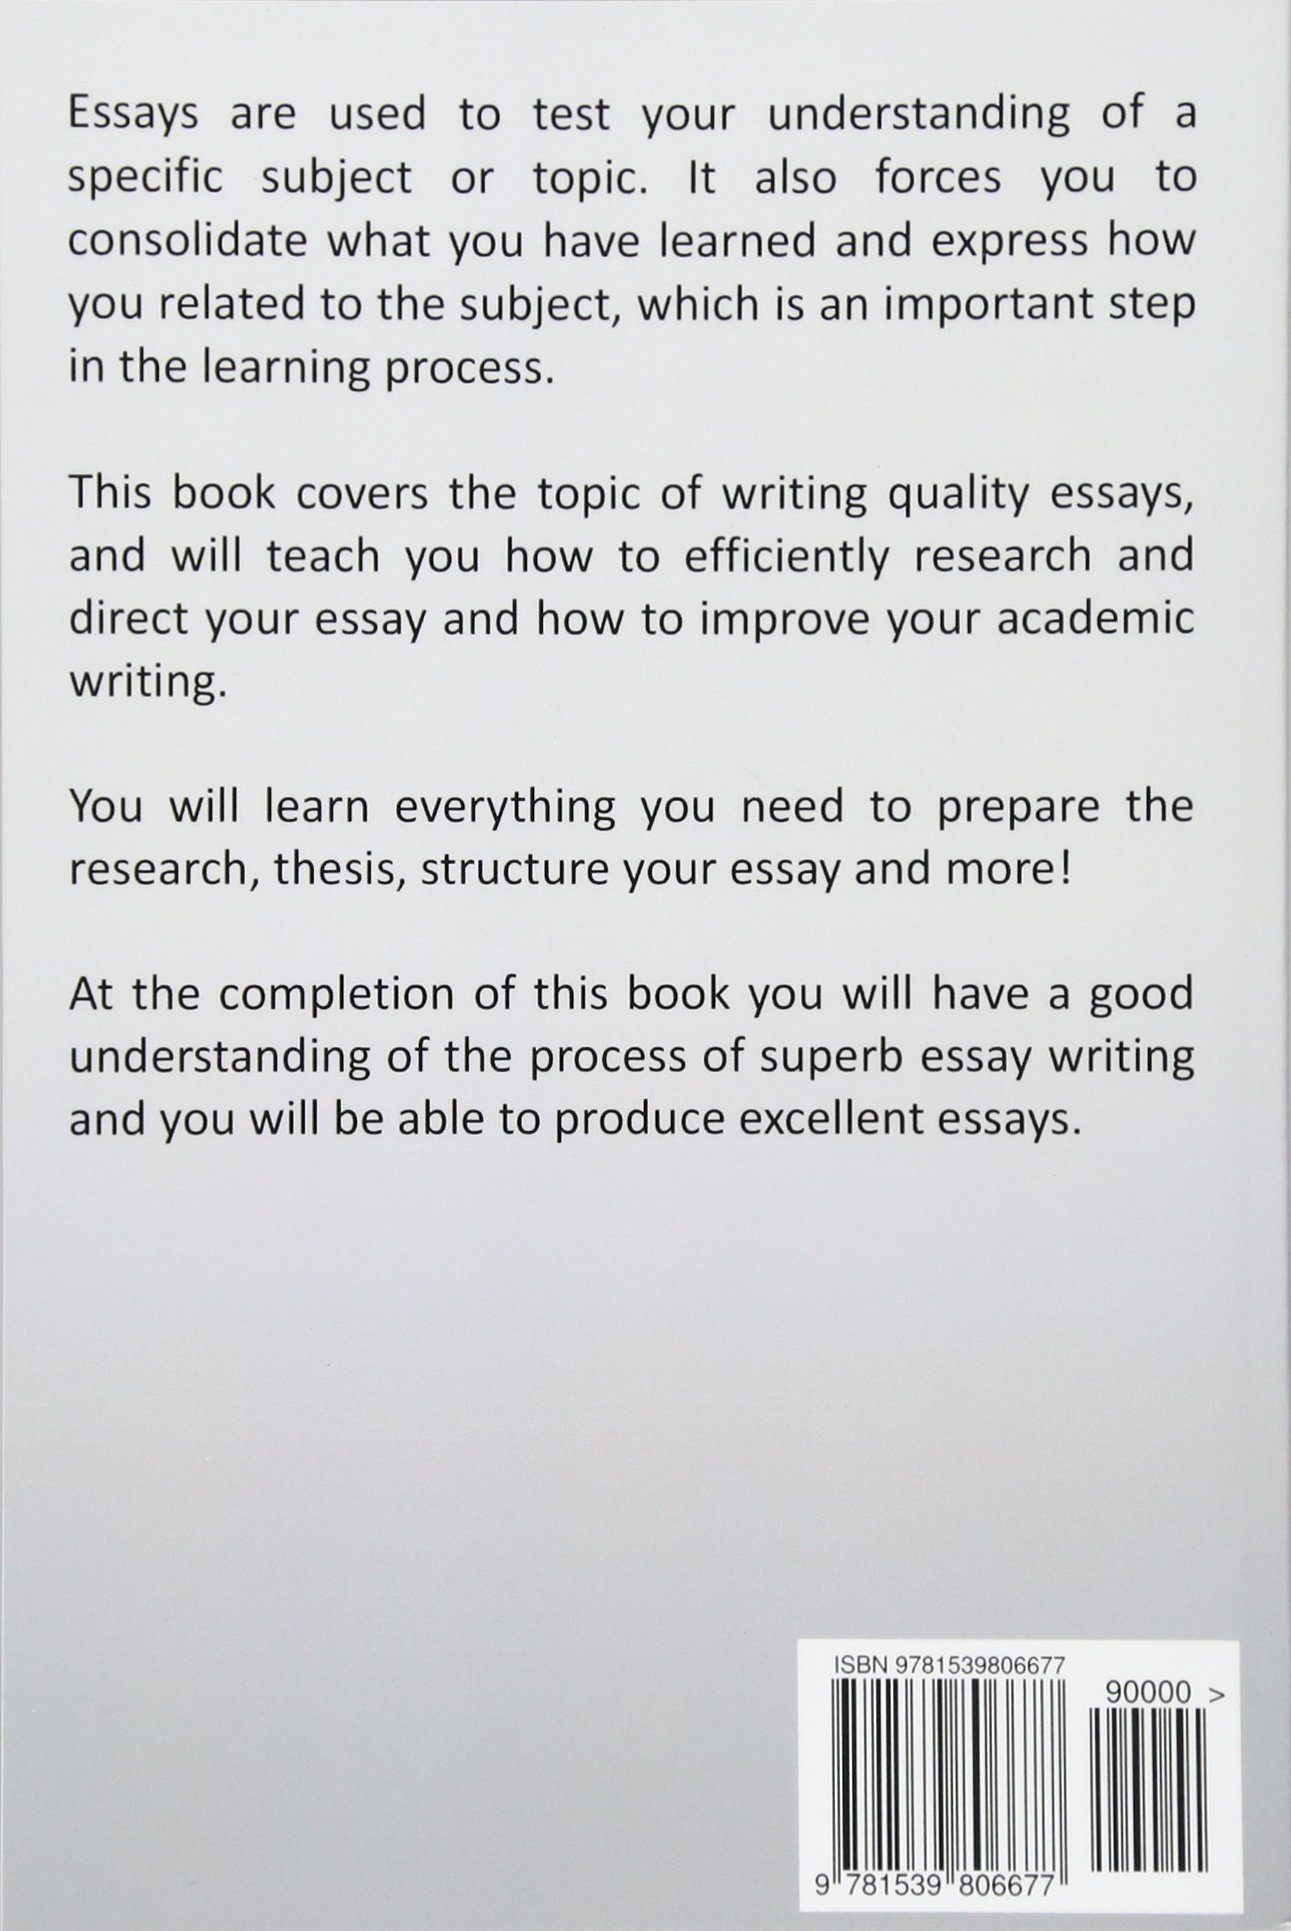 Health Awareness Essay How To Write An Essay Everything You Need To Know On Quality Essay  Writing Kevin S Leigh  Amazoncom Books Reflective Essay English Class also Proposal Essay Topic List How To Write An Essay Everything You Need To Know On Quality Essay  Essay On Global Warming In English